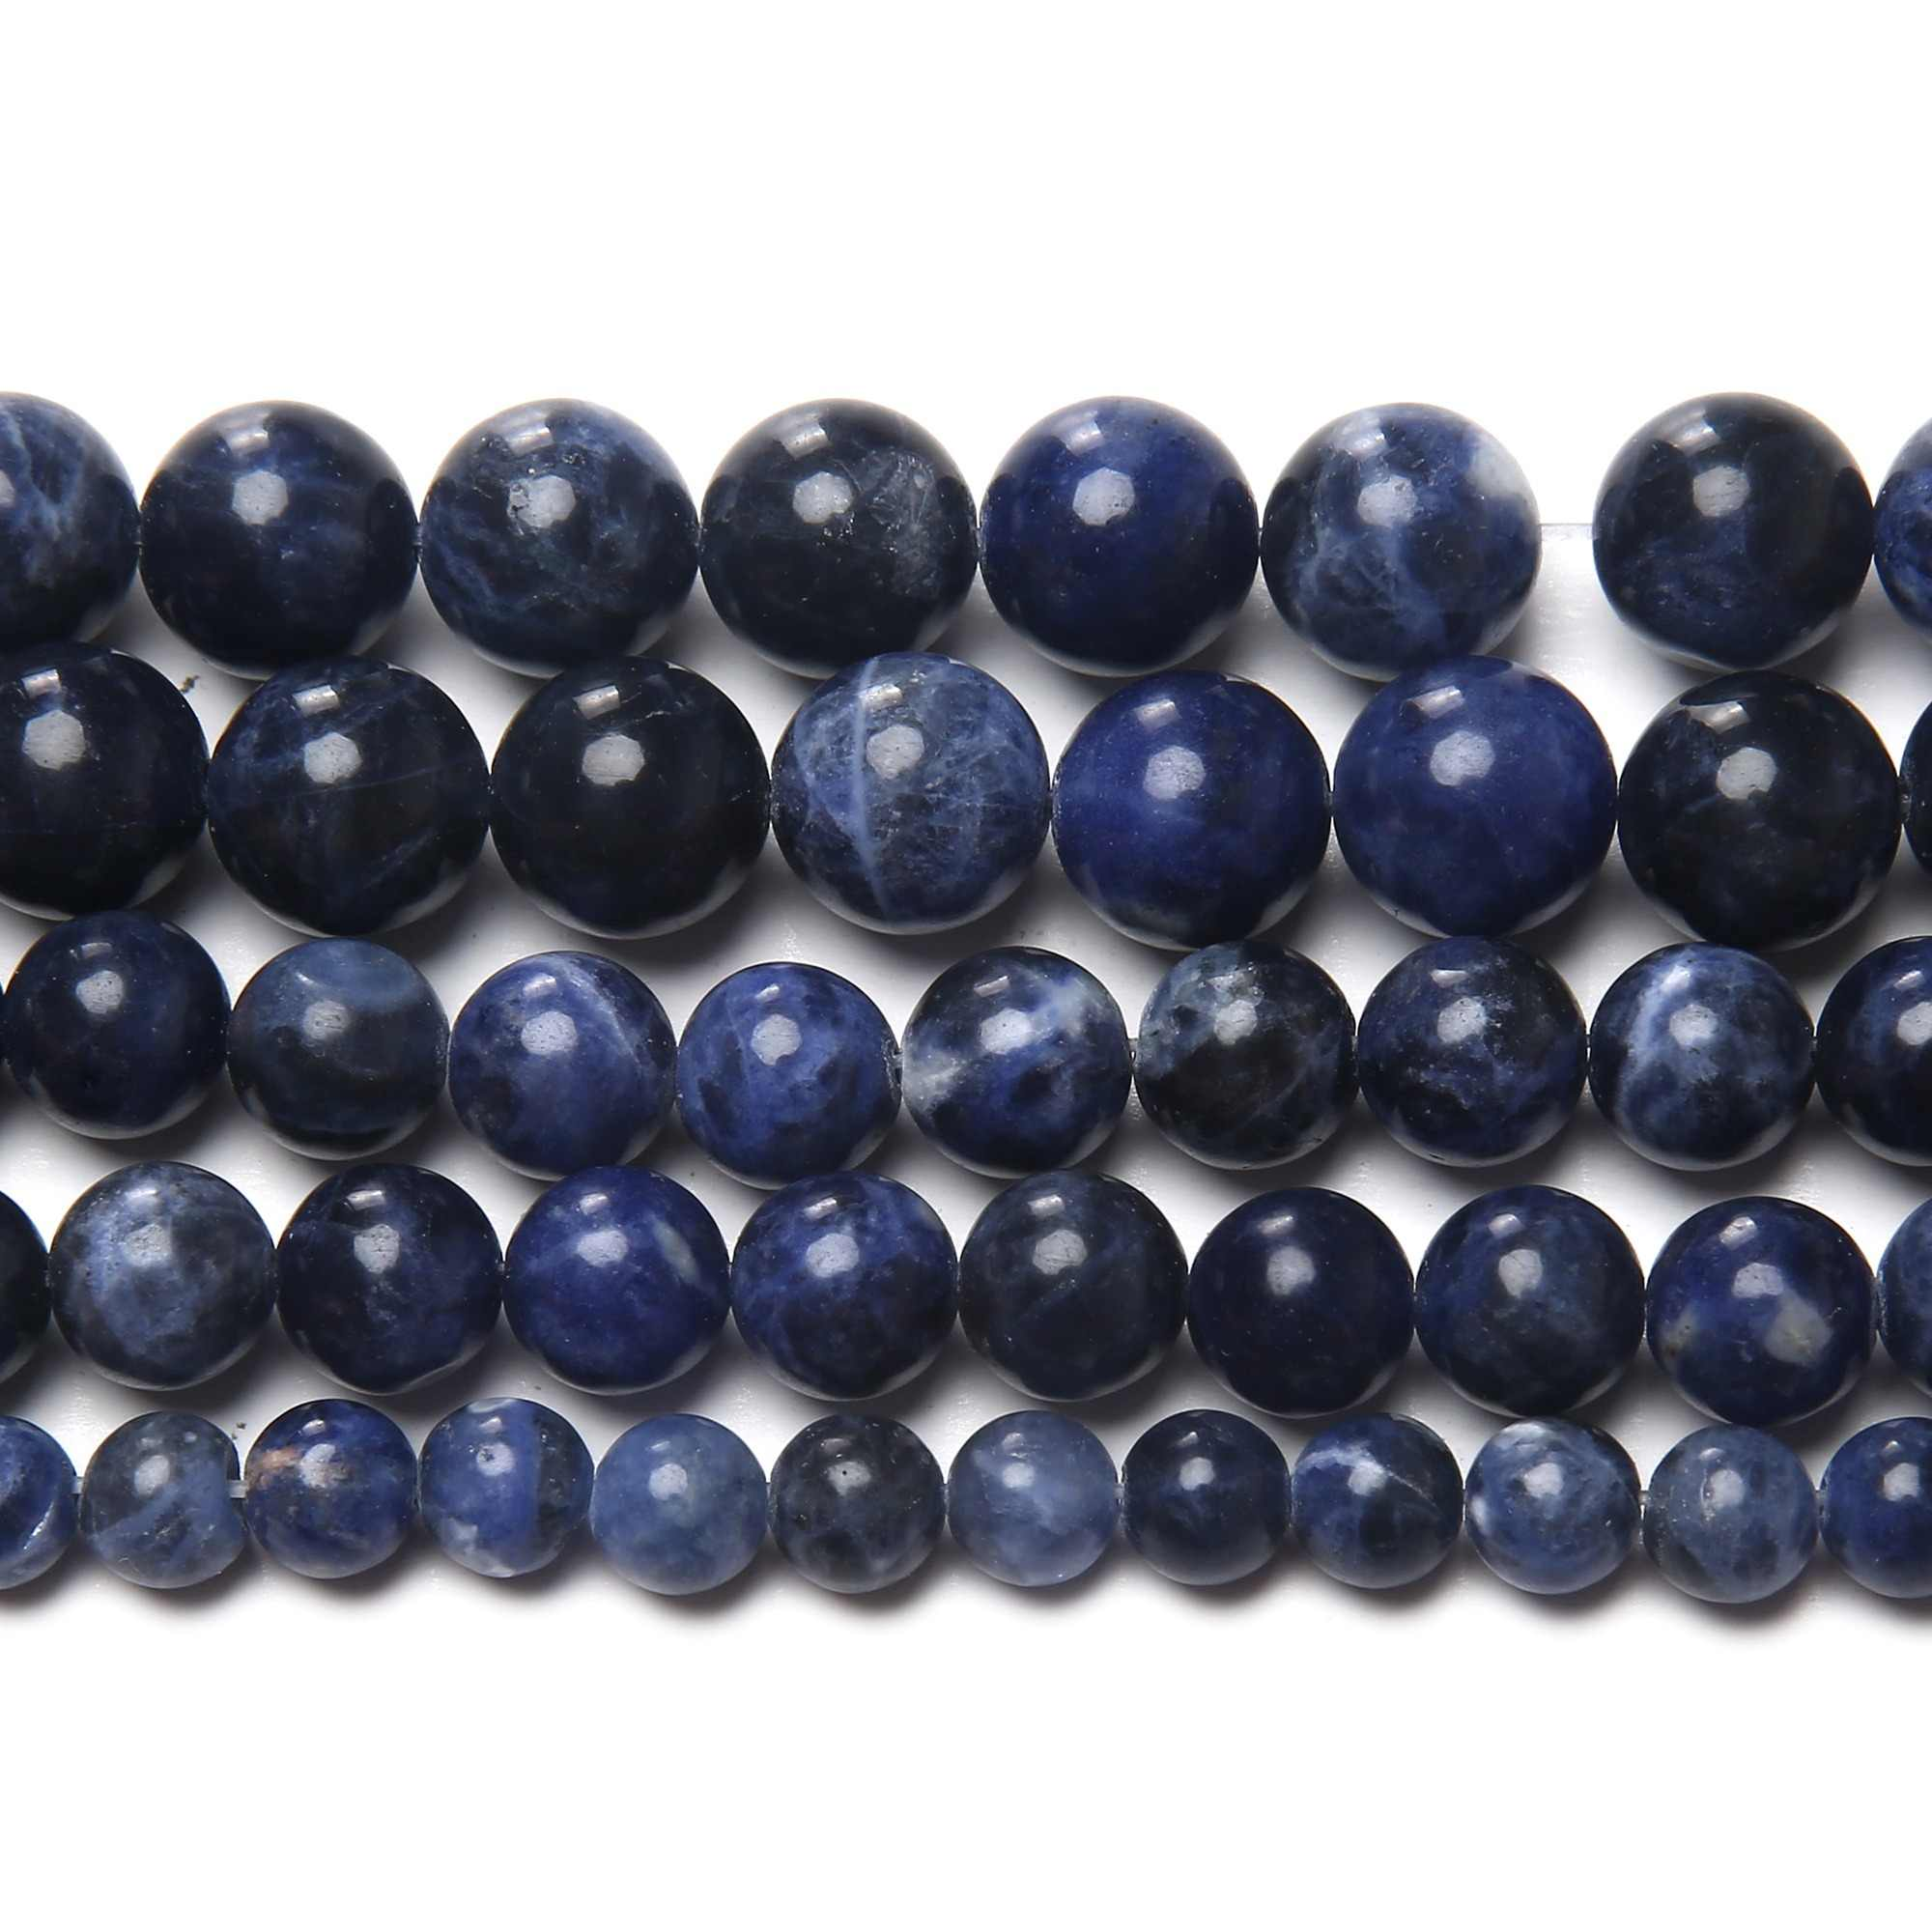 "Free Shipping Natural Stone Old Blue Sodalite Round Loose Beads 15"" Strand 3 4 6 8 10 12MM Pick Size For Jewelry Making SAB15"